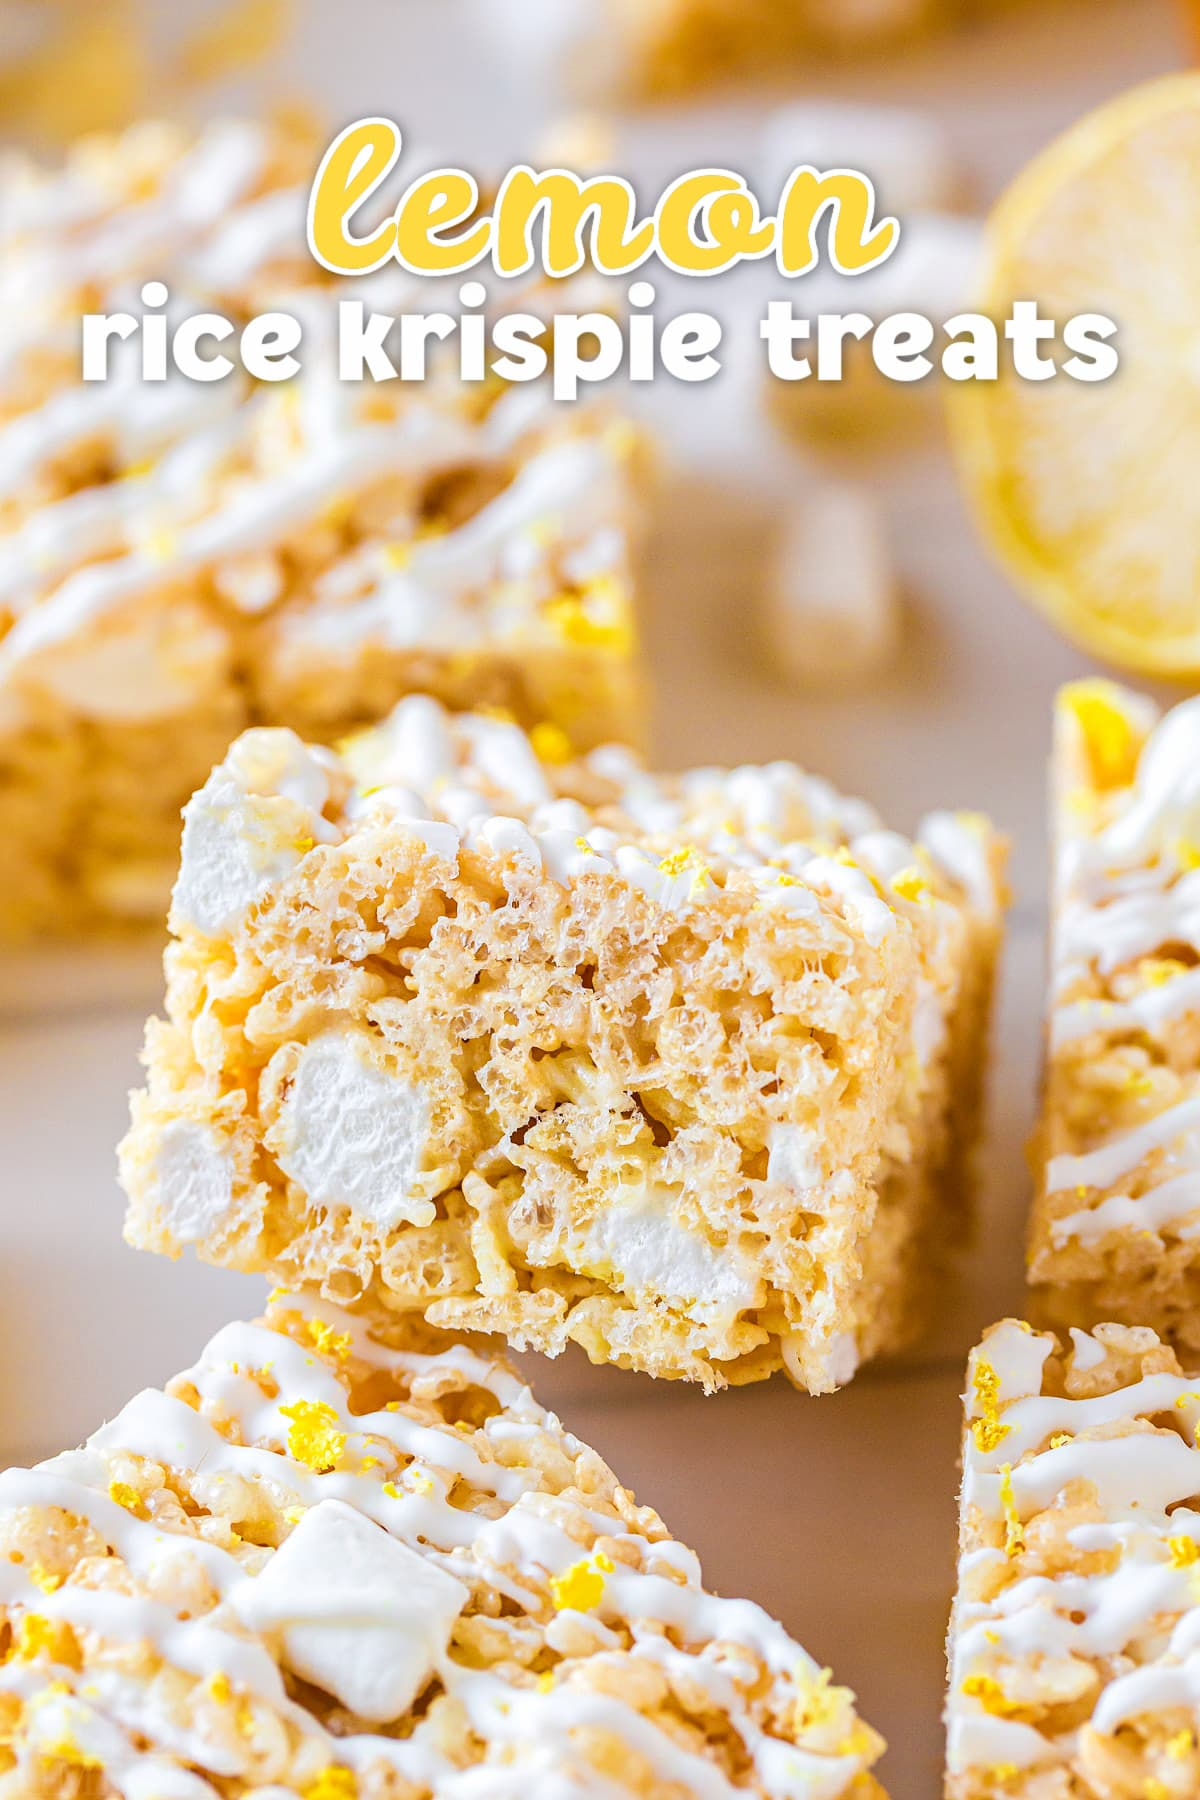 lemon rice krispie treat cut into a square with lemon zest and white drizzle on top. title overlay at top of image.